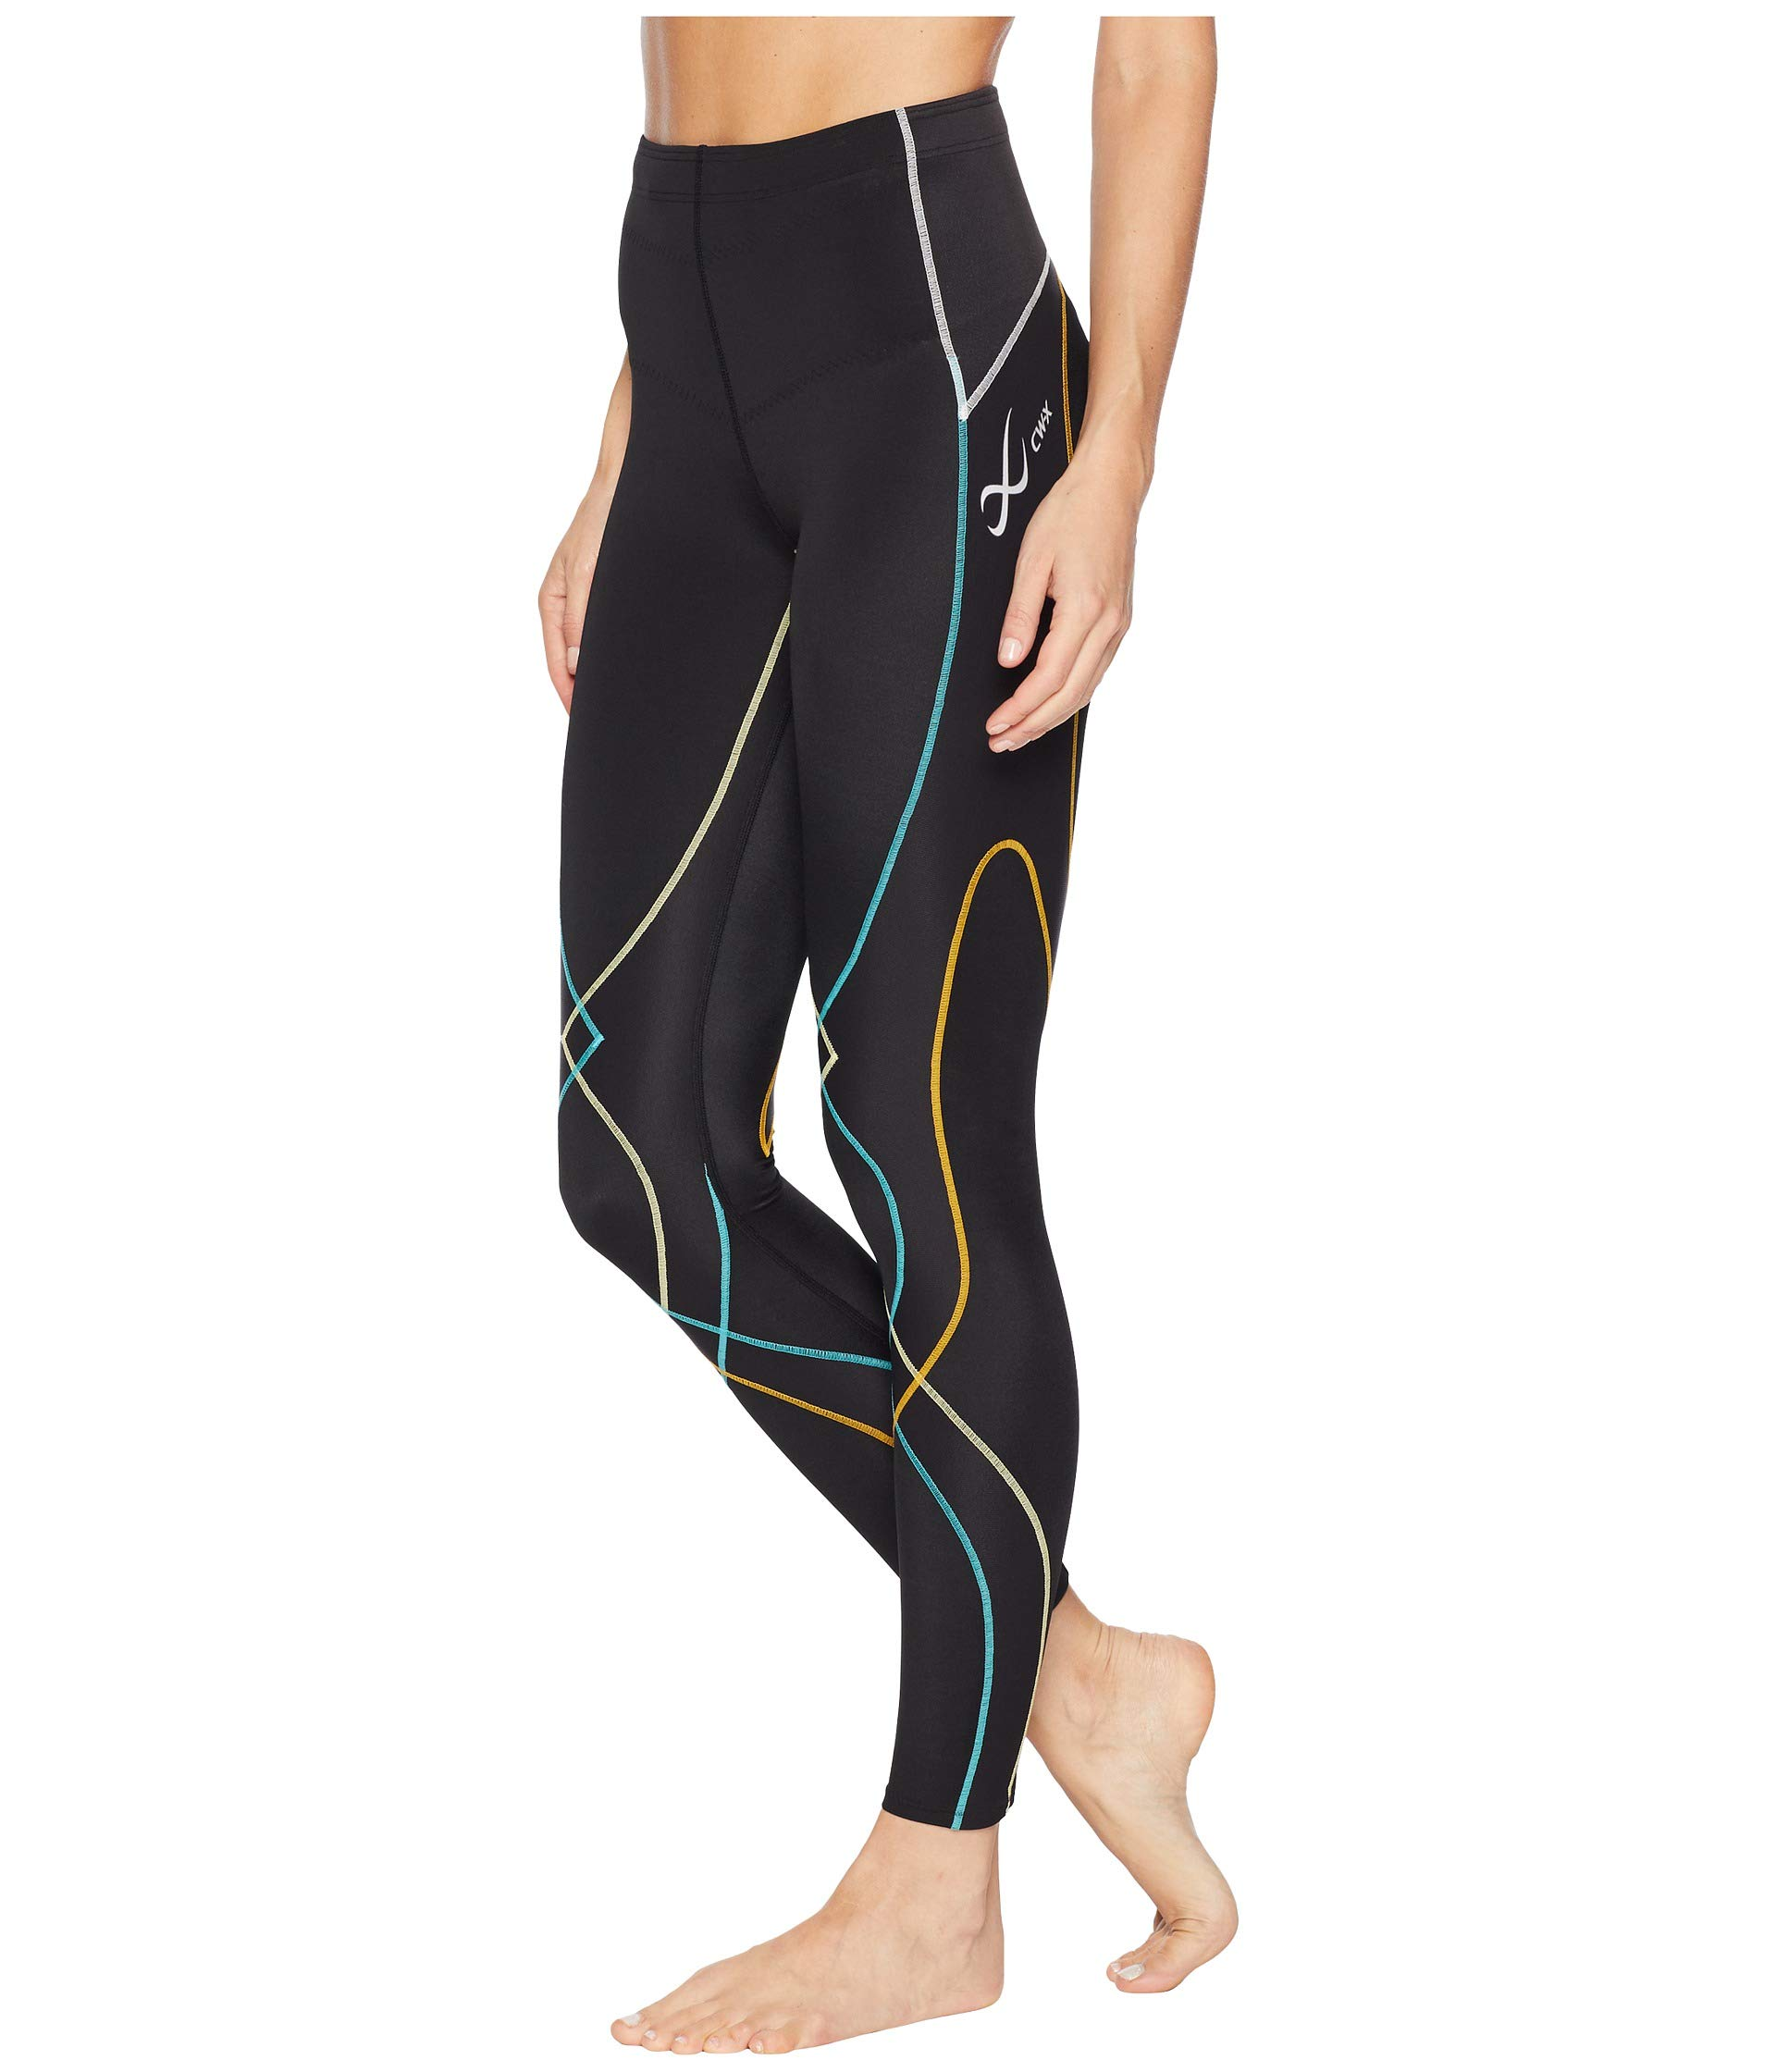 CW-X Women's Stabilyx Joint Support Compression Tight, Black/Bright Rainbow, X-Small by CW-X (Image #3)